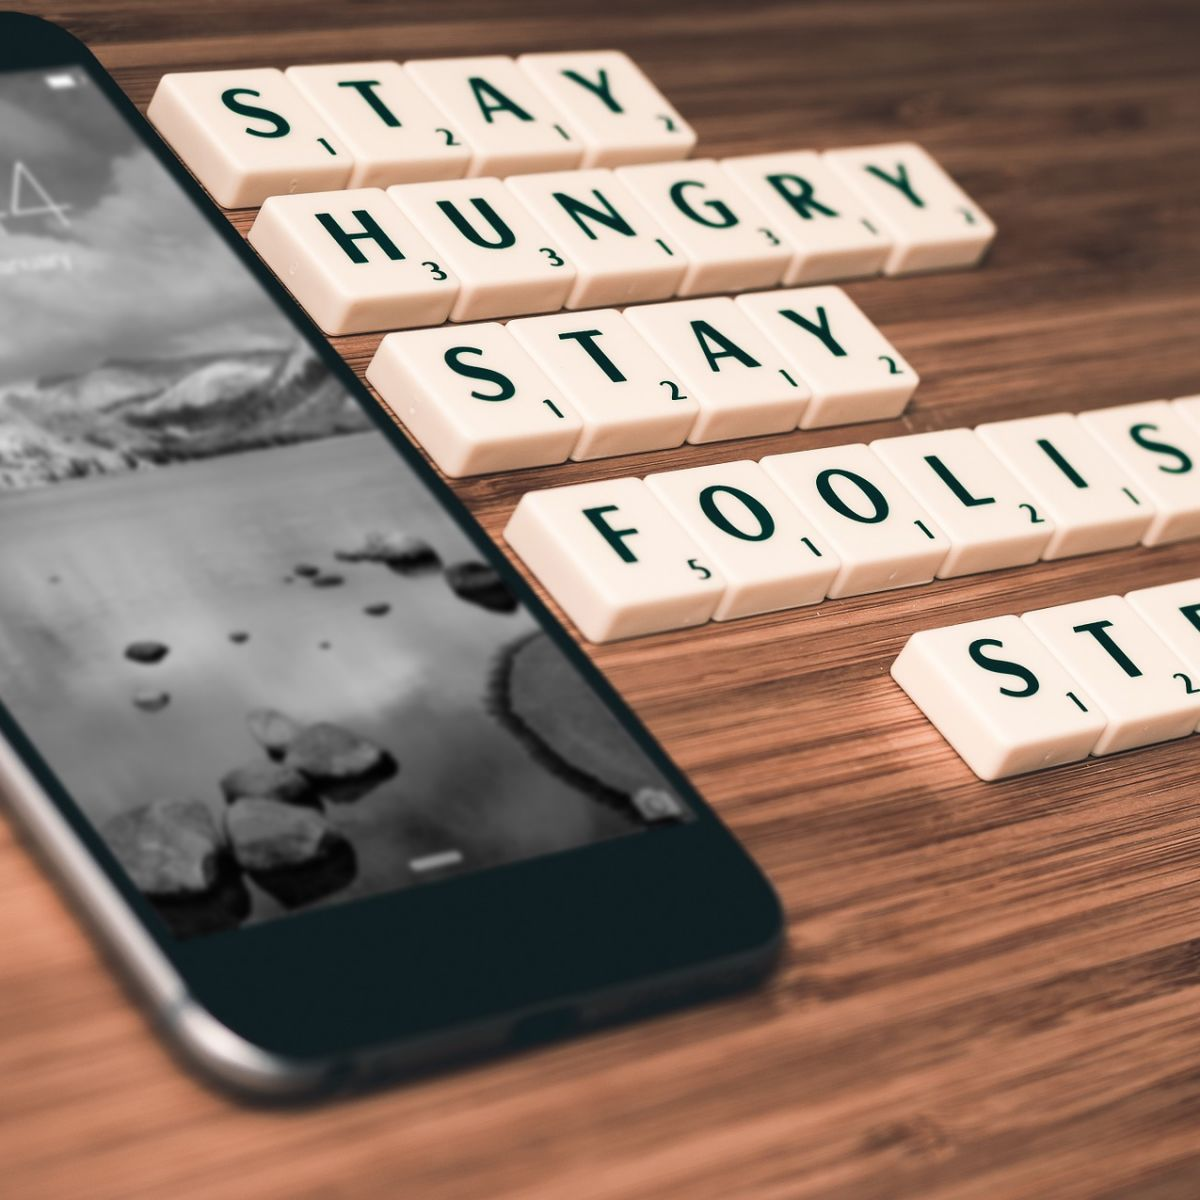 iPhone, Steve Jobs, Apple, Stay hungry, Stay foolish